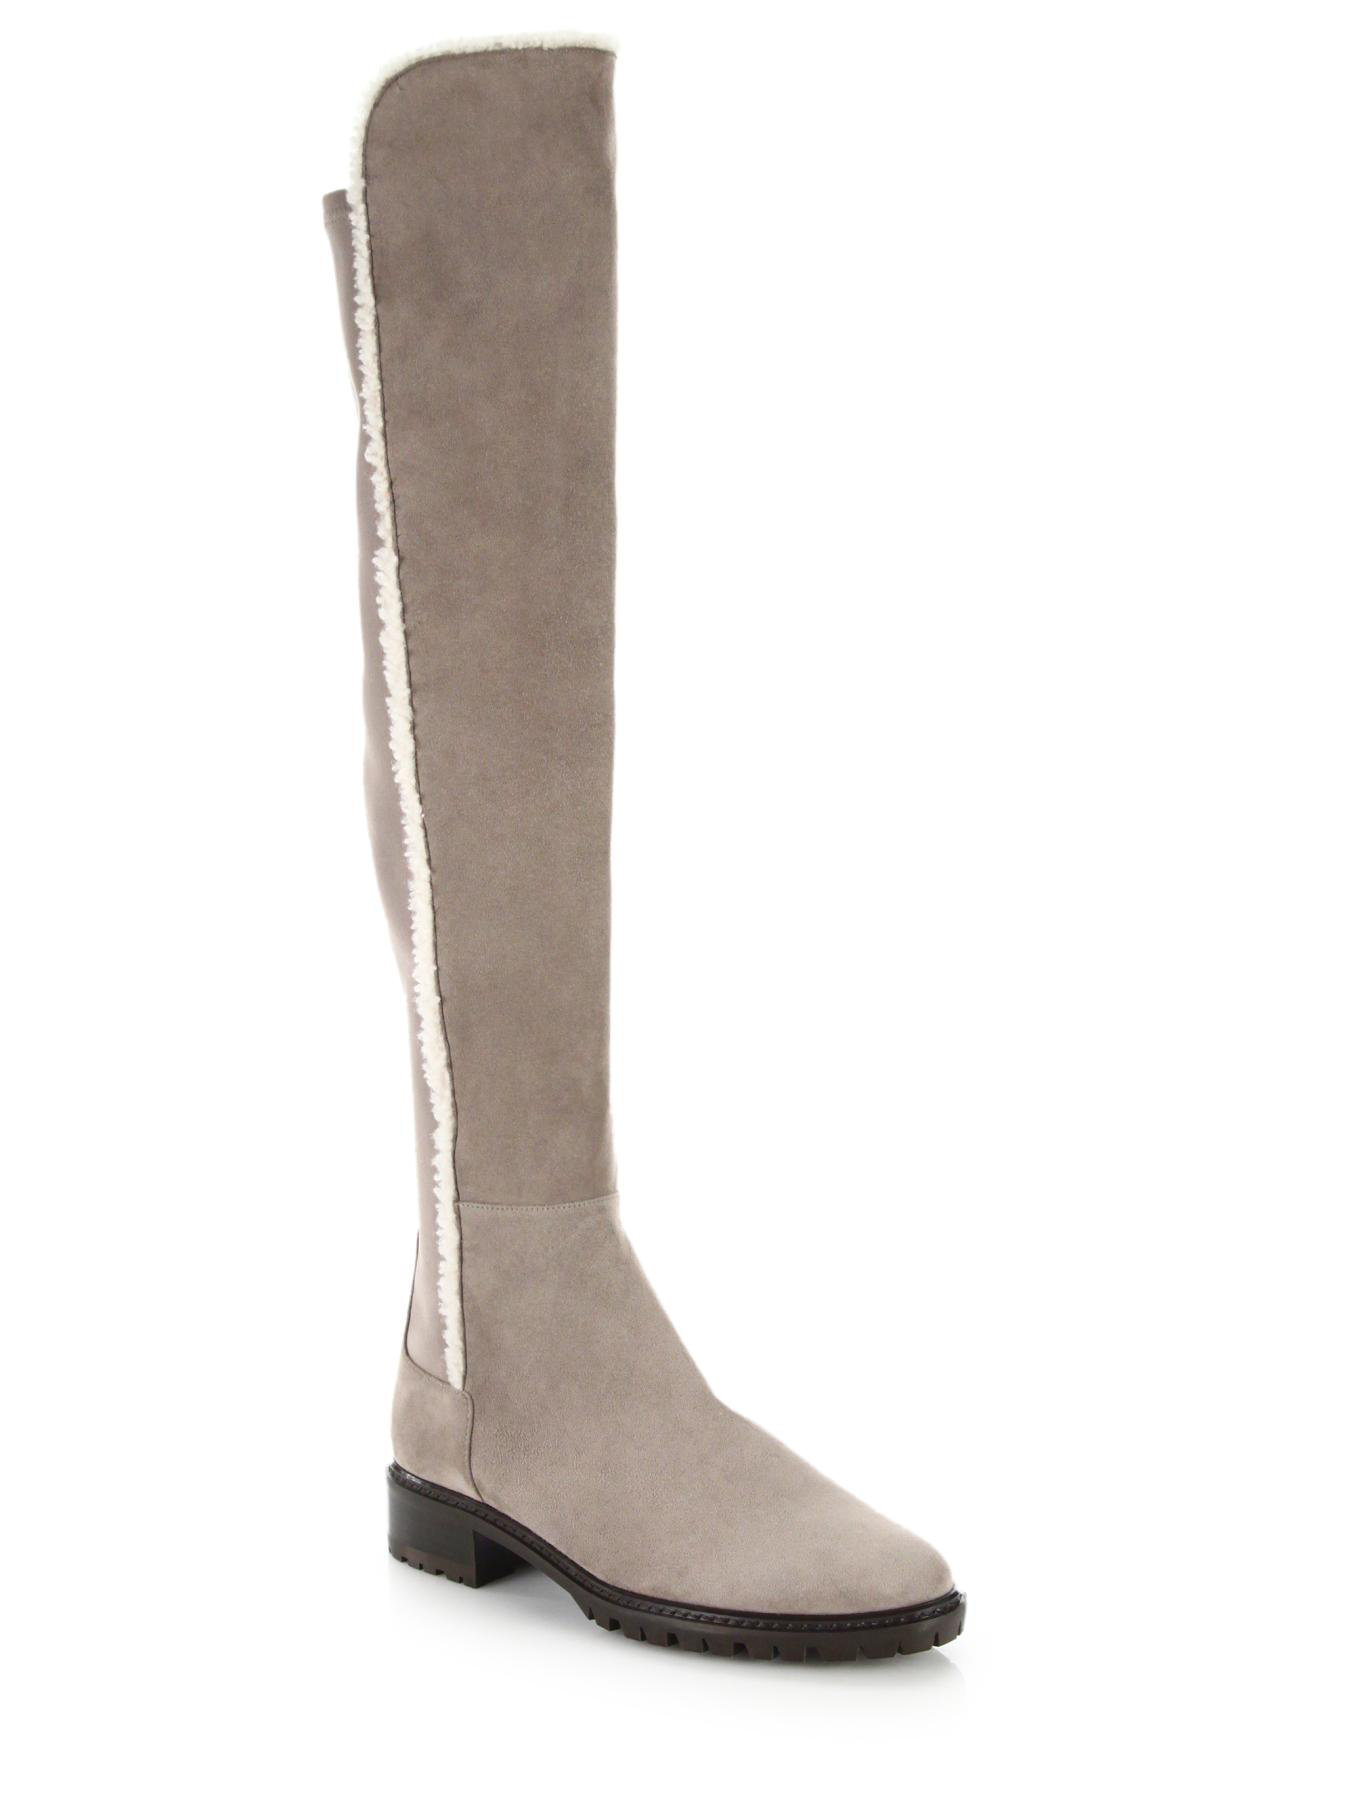 Stuart Weitzman Parka Over-The-Knee Boots cheap sale cost outlet best prices cheap sale footlocker pictures cheap sale discount F5MqBuL